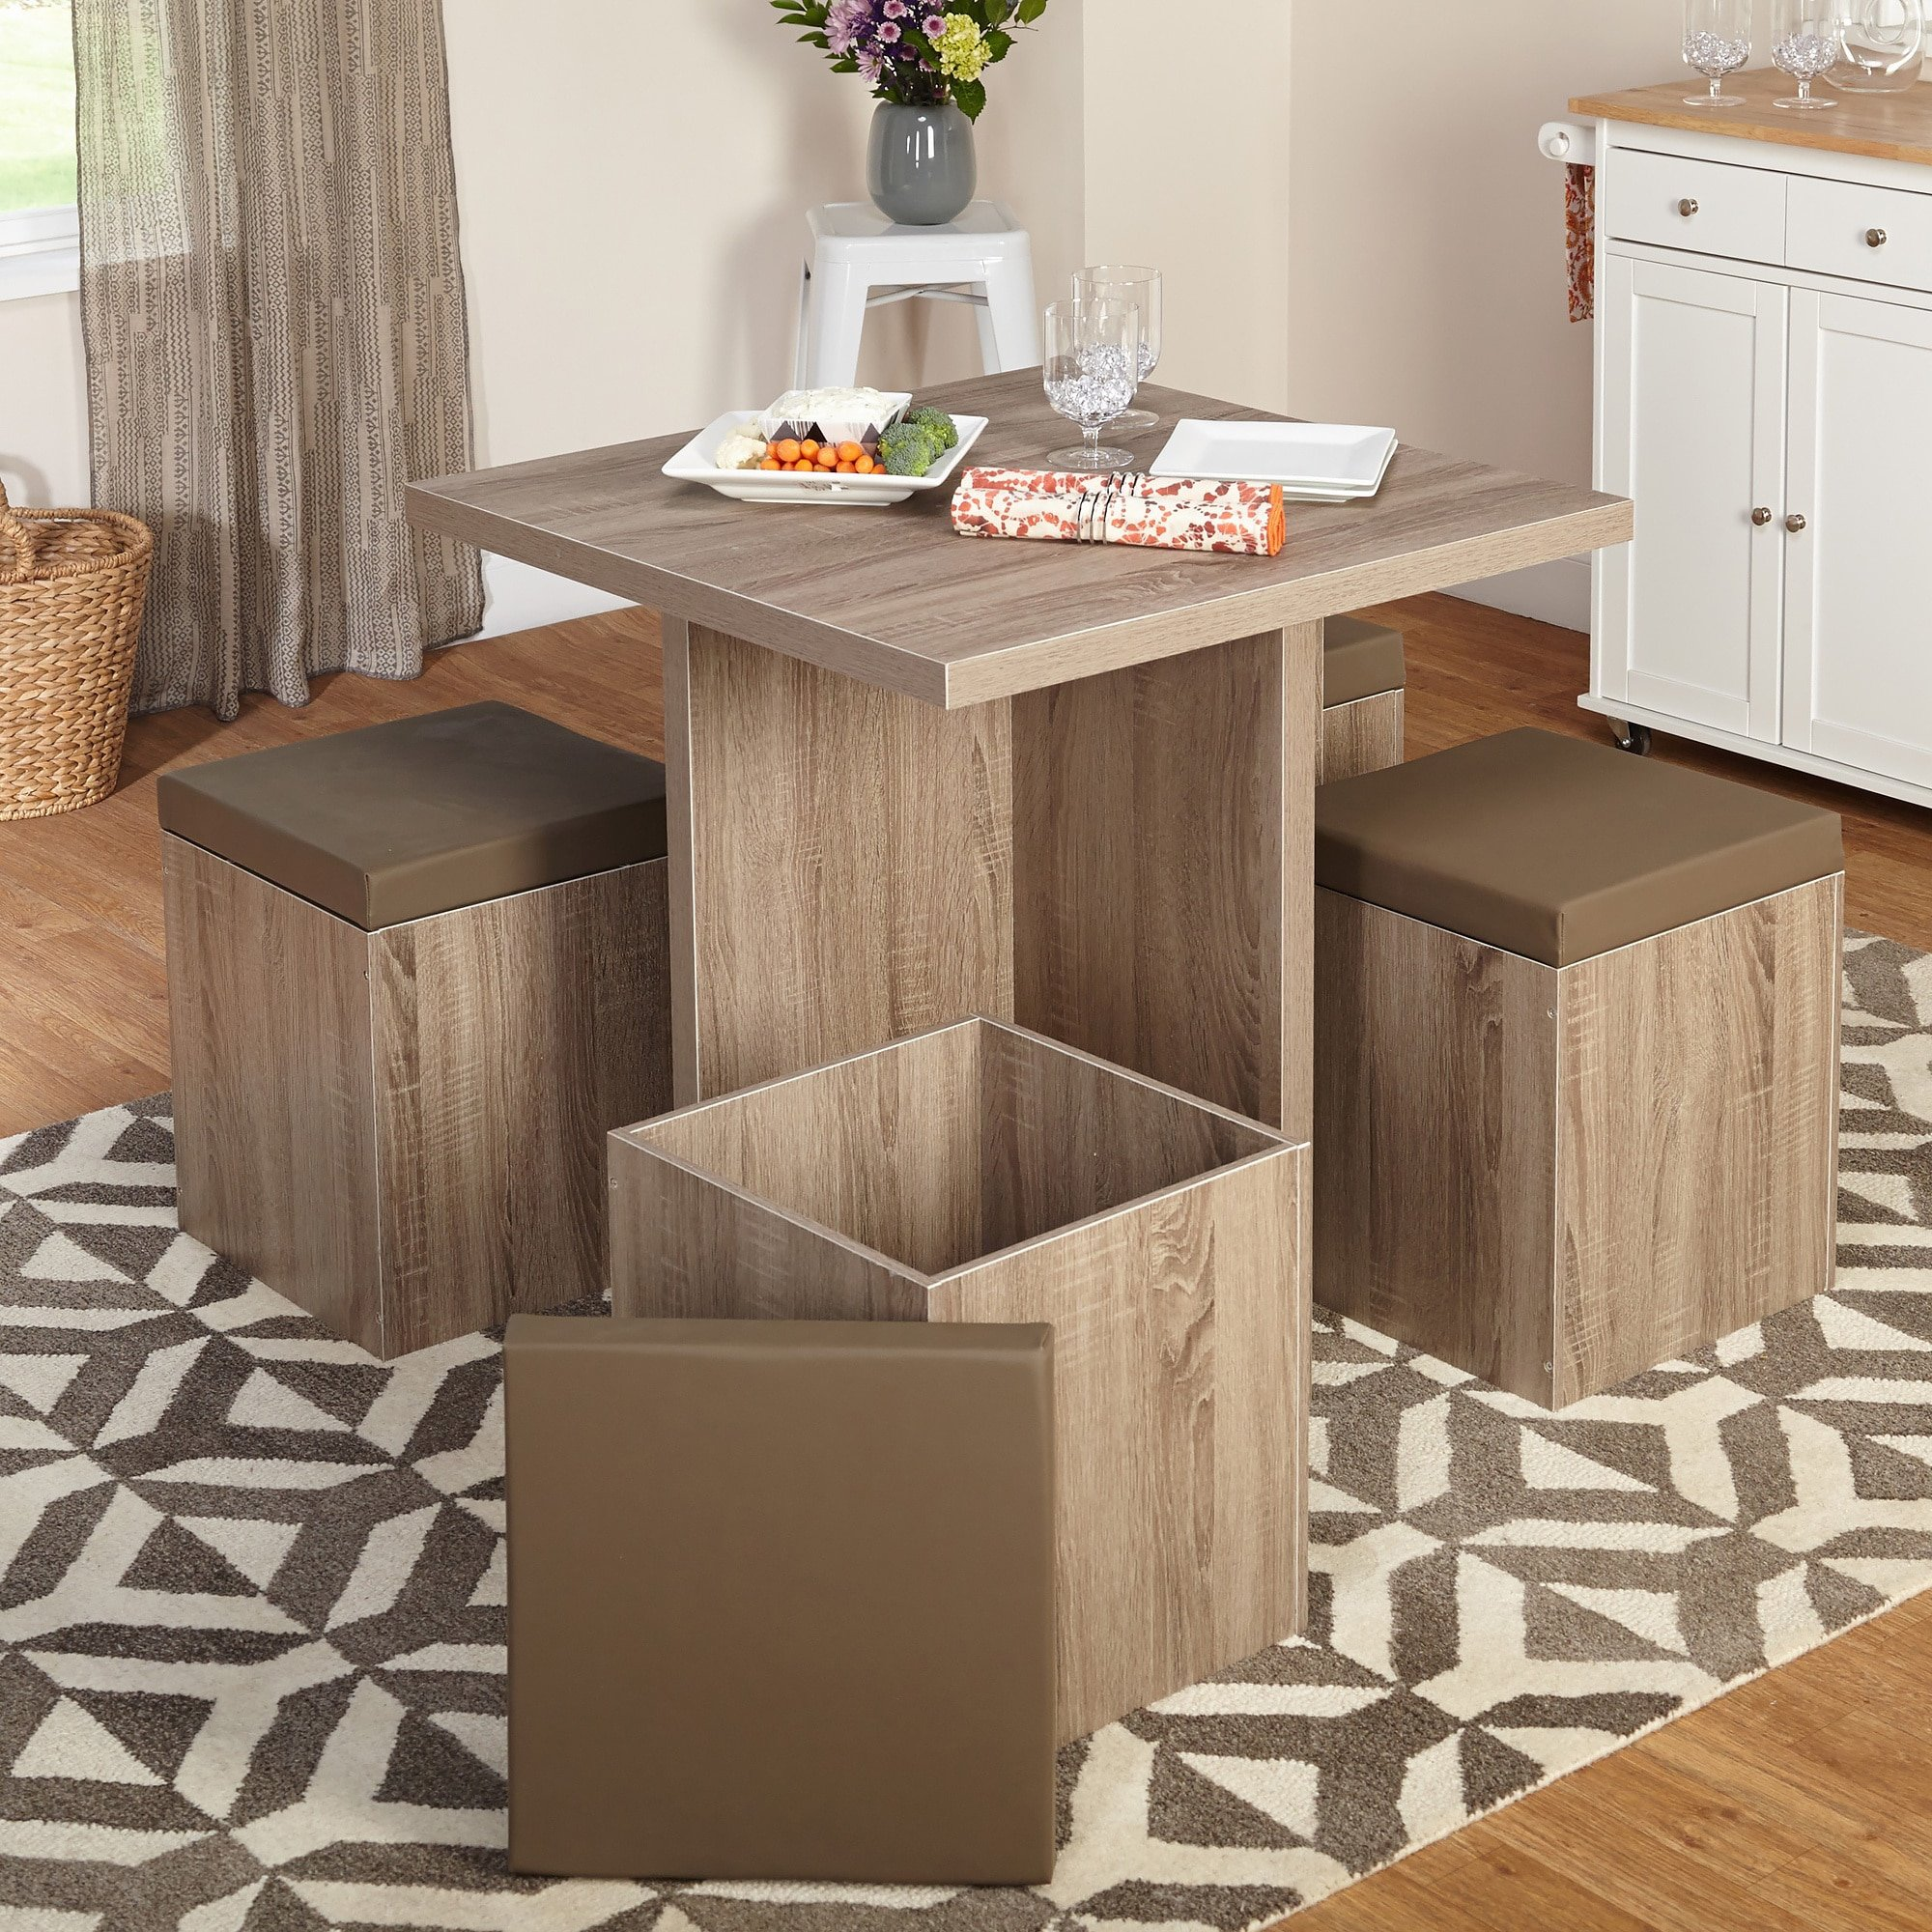 Get Quotations 5 Piece Dining Set With Storage Ottomans One Square Table Four Cushioned